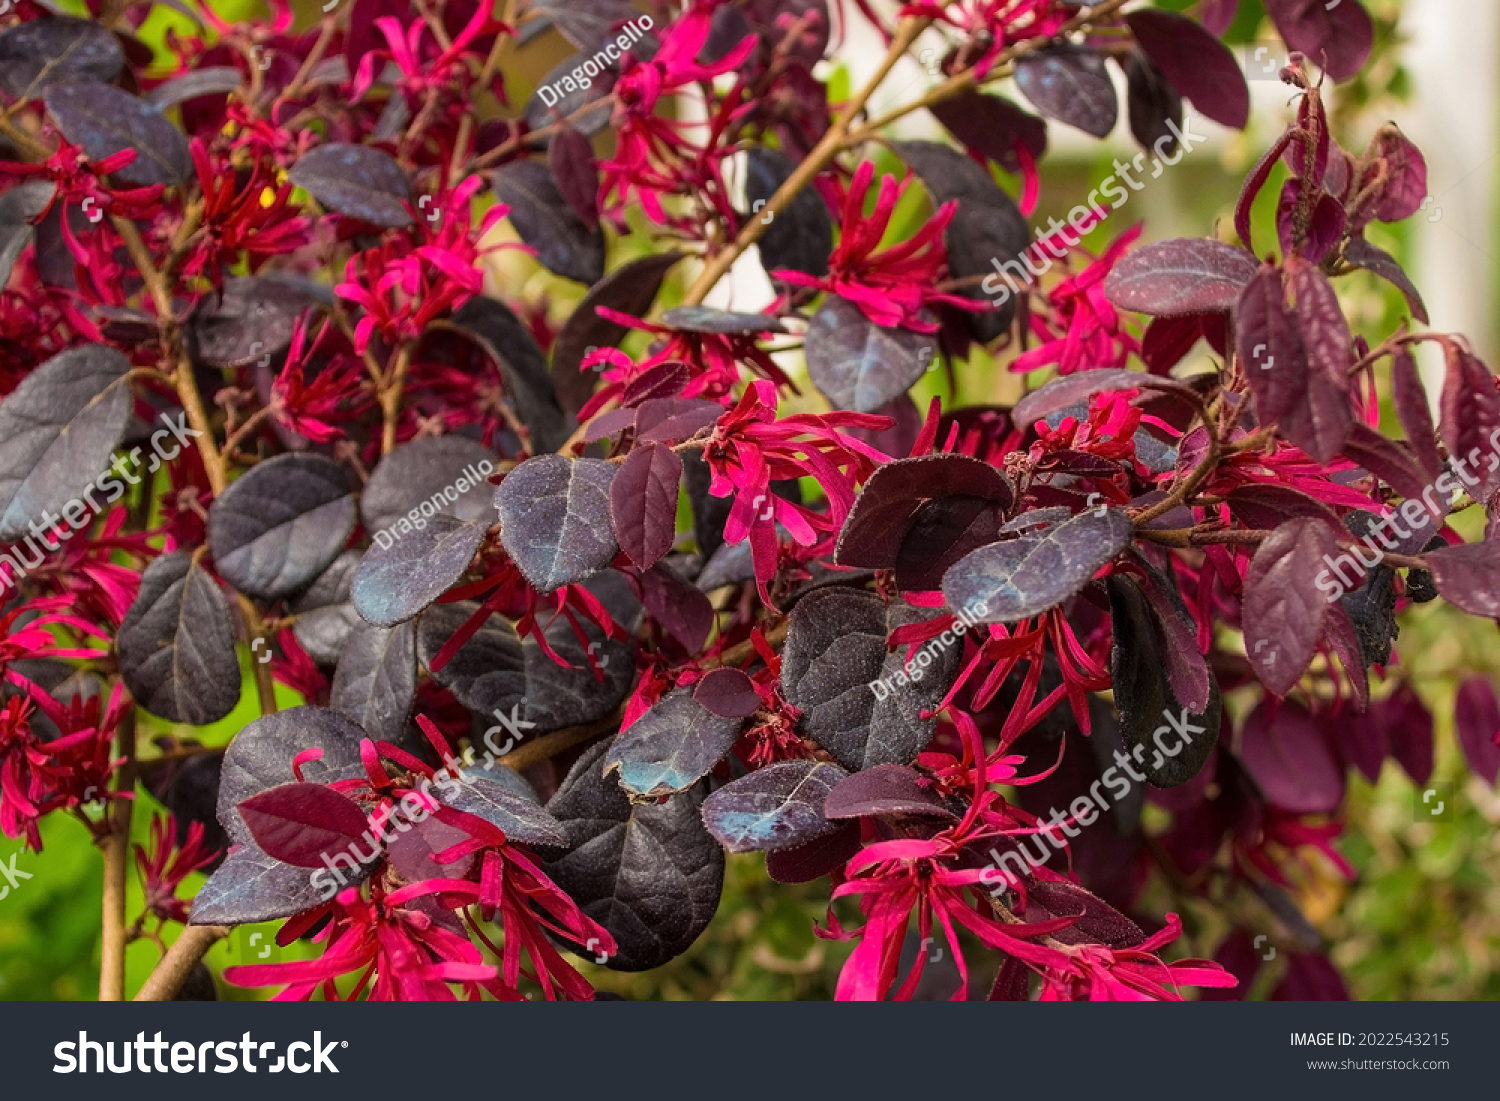 Leaves and flowers on a Loropetalum Chinense plant growing in north east Italy. This evergreen shrub is commonly known as Loropetalum, Chinese Fringe Flower or Strap Flower #2022543215